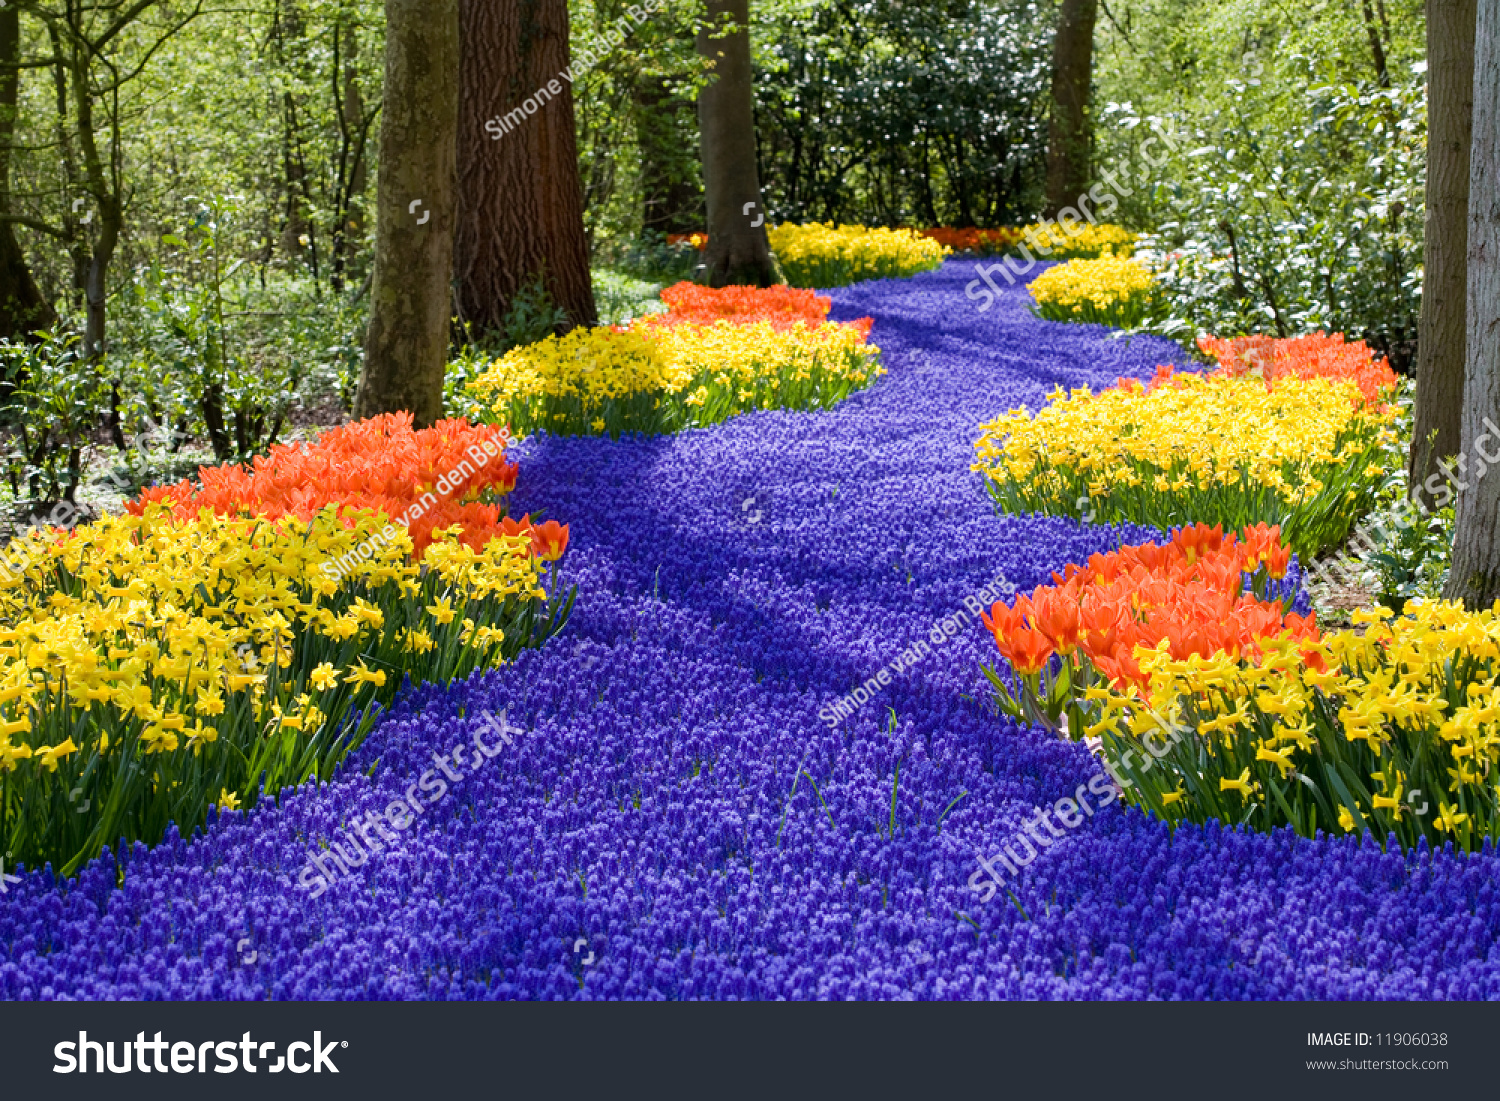 Beautiful field spring flowers narcissus tulips stock photo edit beautiful field of spring flowers with narcissus tulips and muscari izmirmasajfo